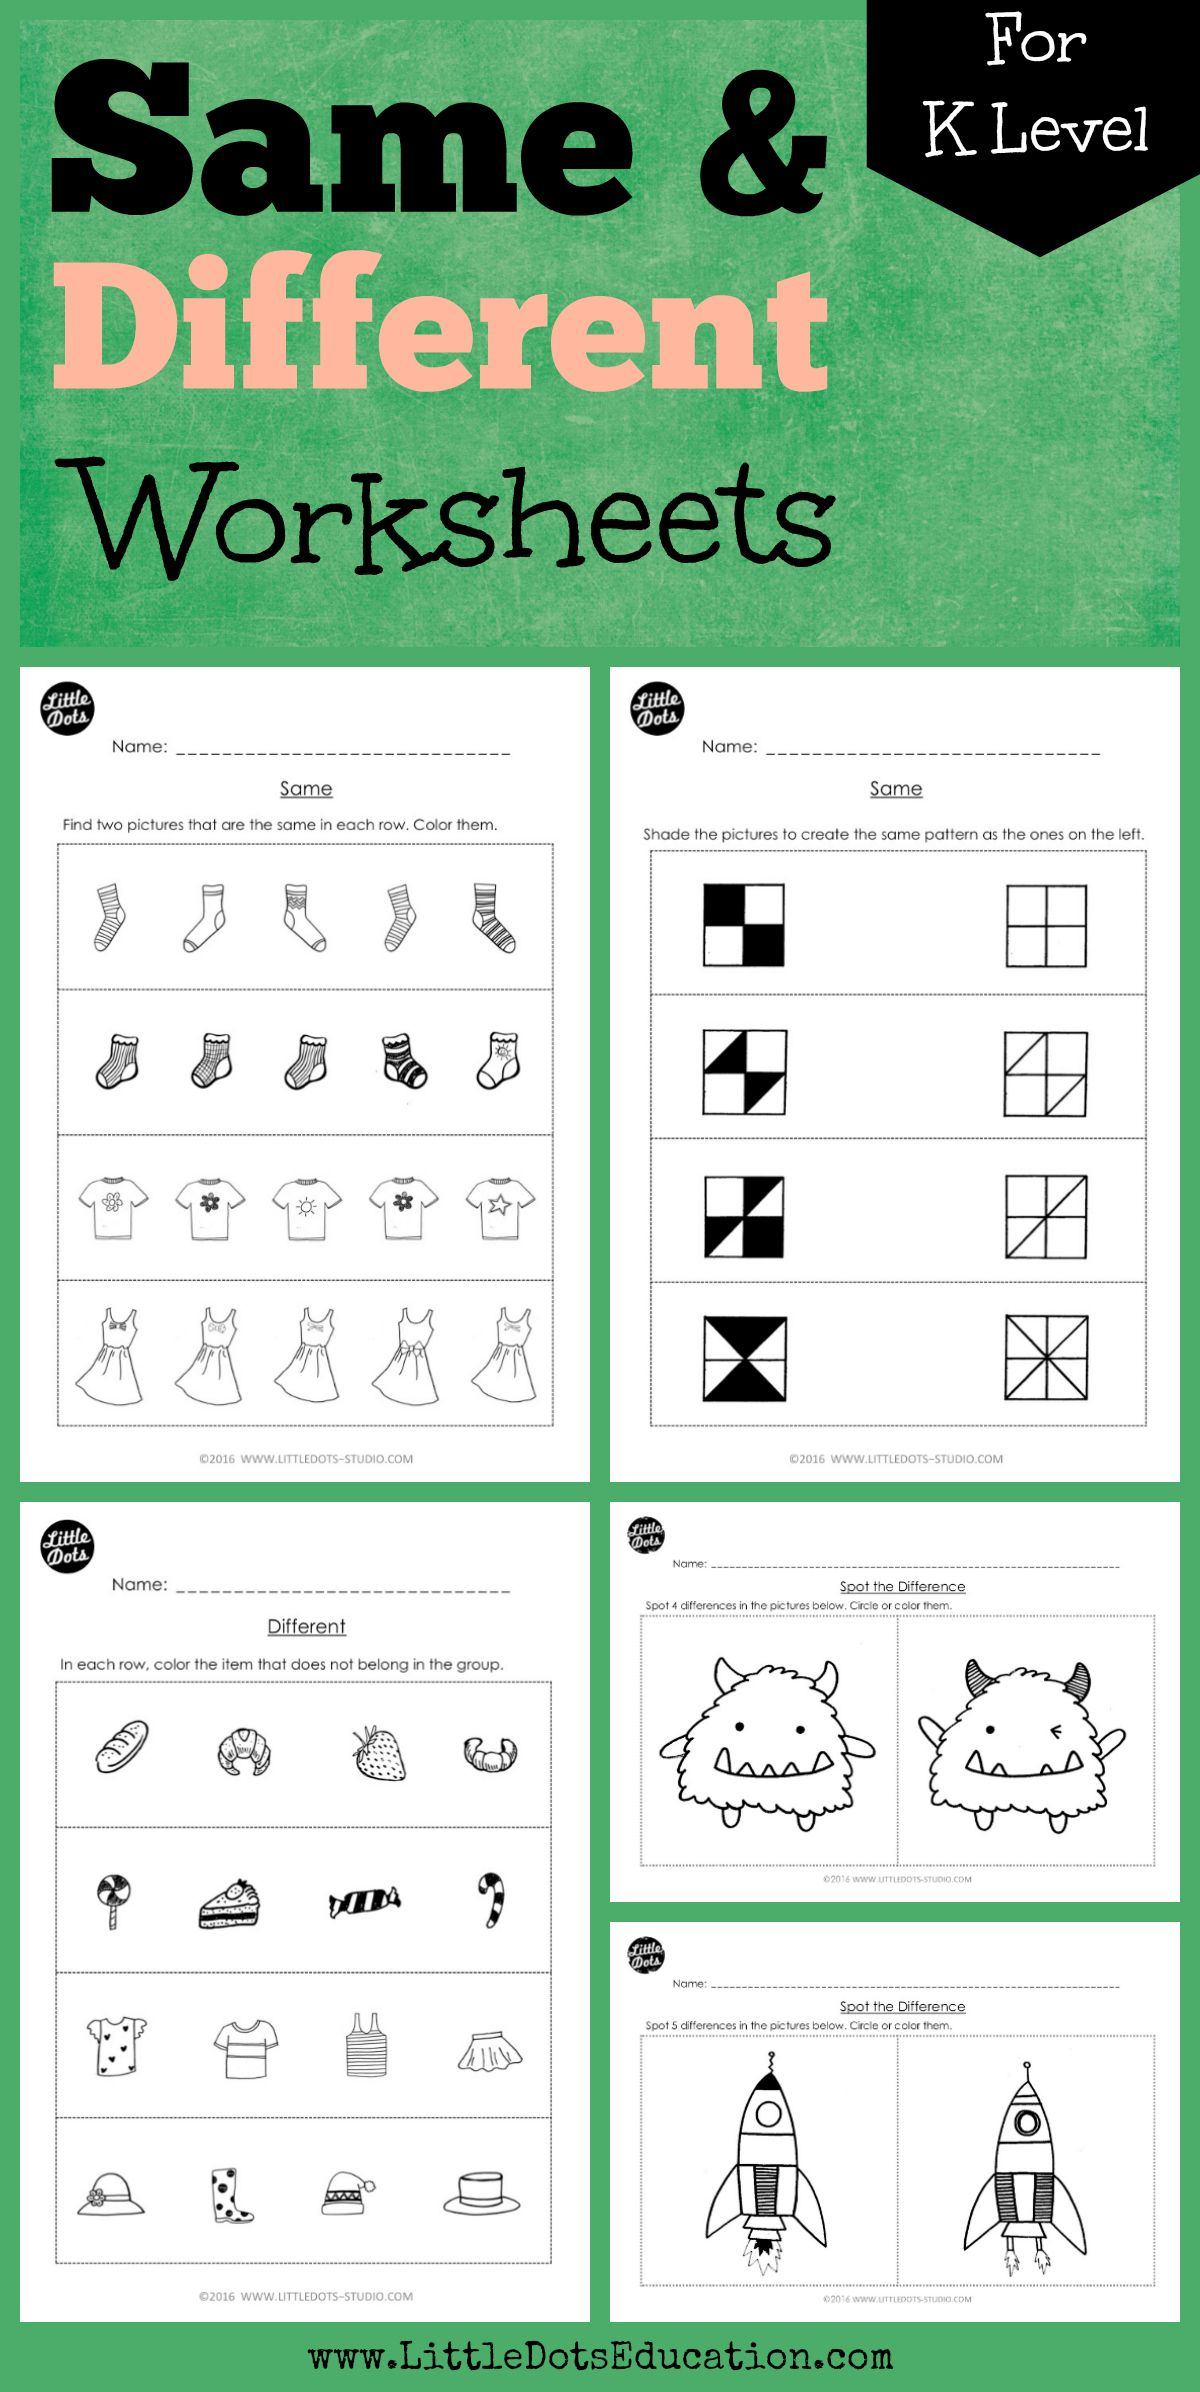 Download Worksheets And Activities To Teach The Concept Of Same And Different To Kindergarten Or